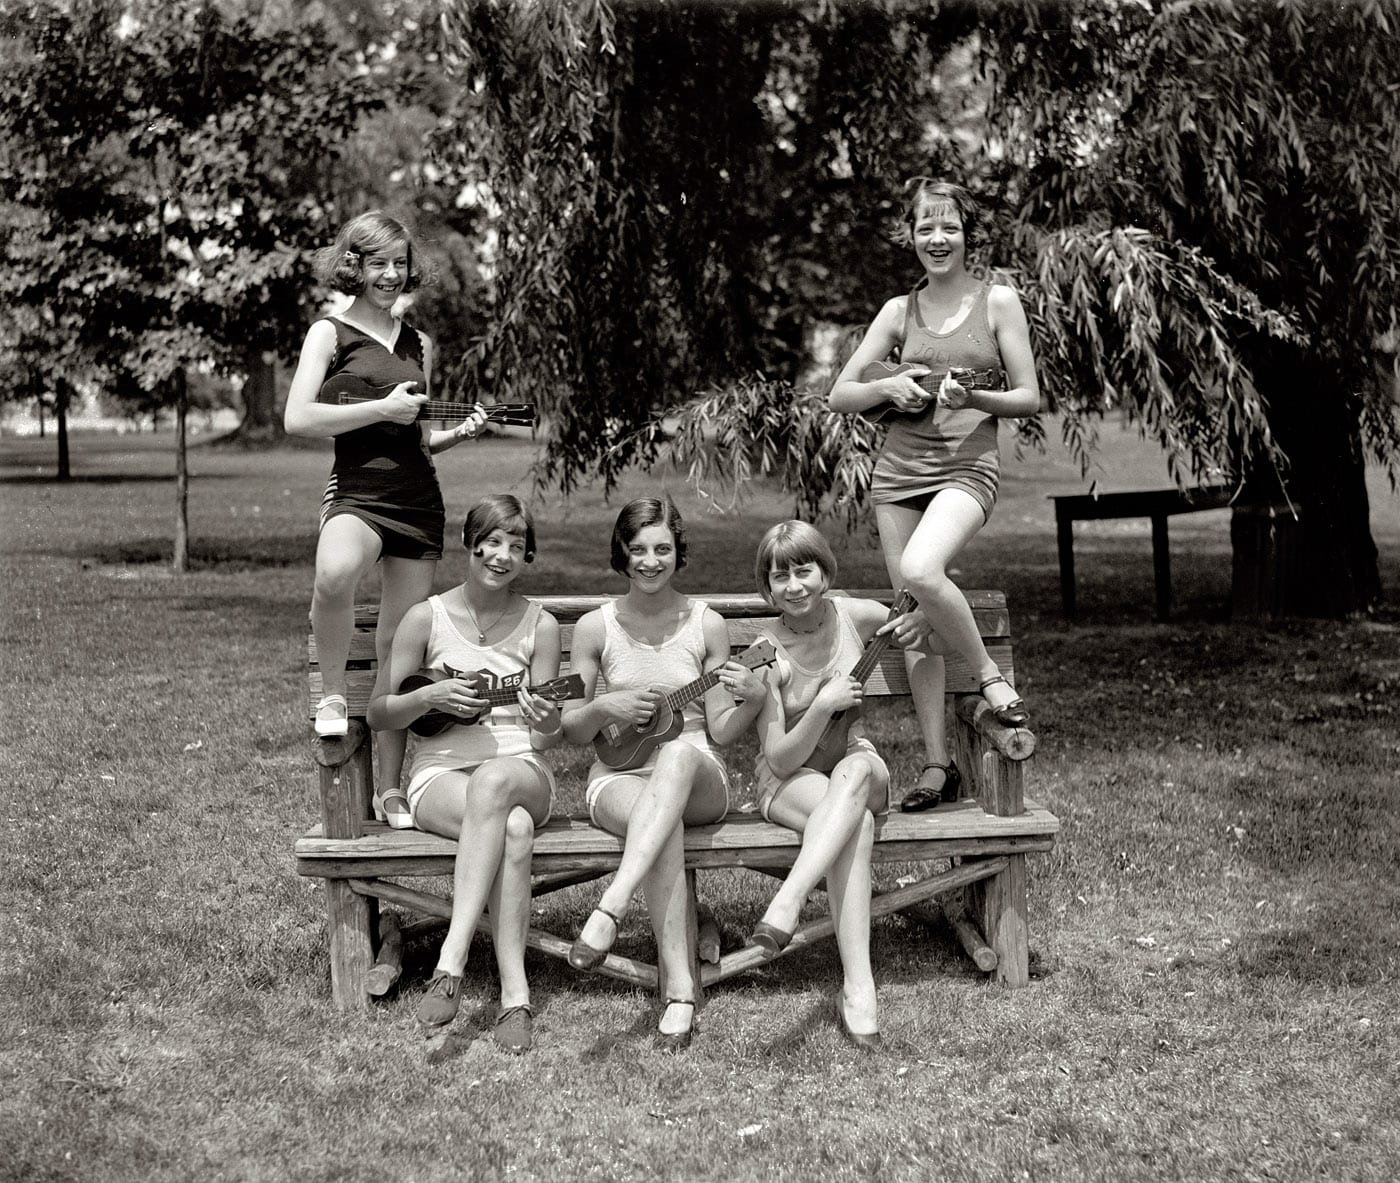 Girls in Bathing Suits With Ukuleles